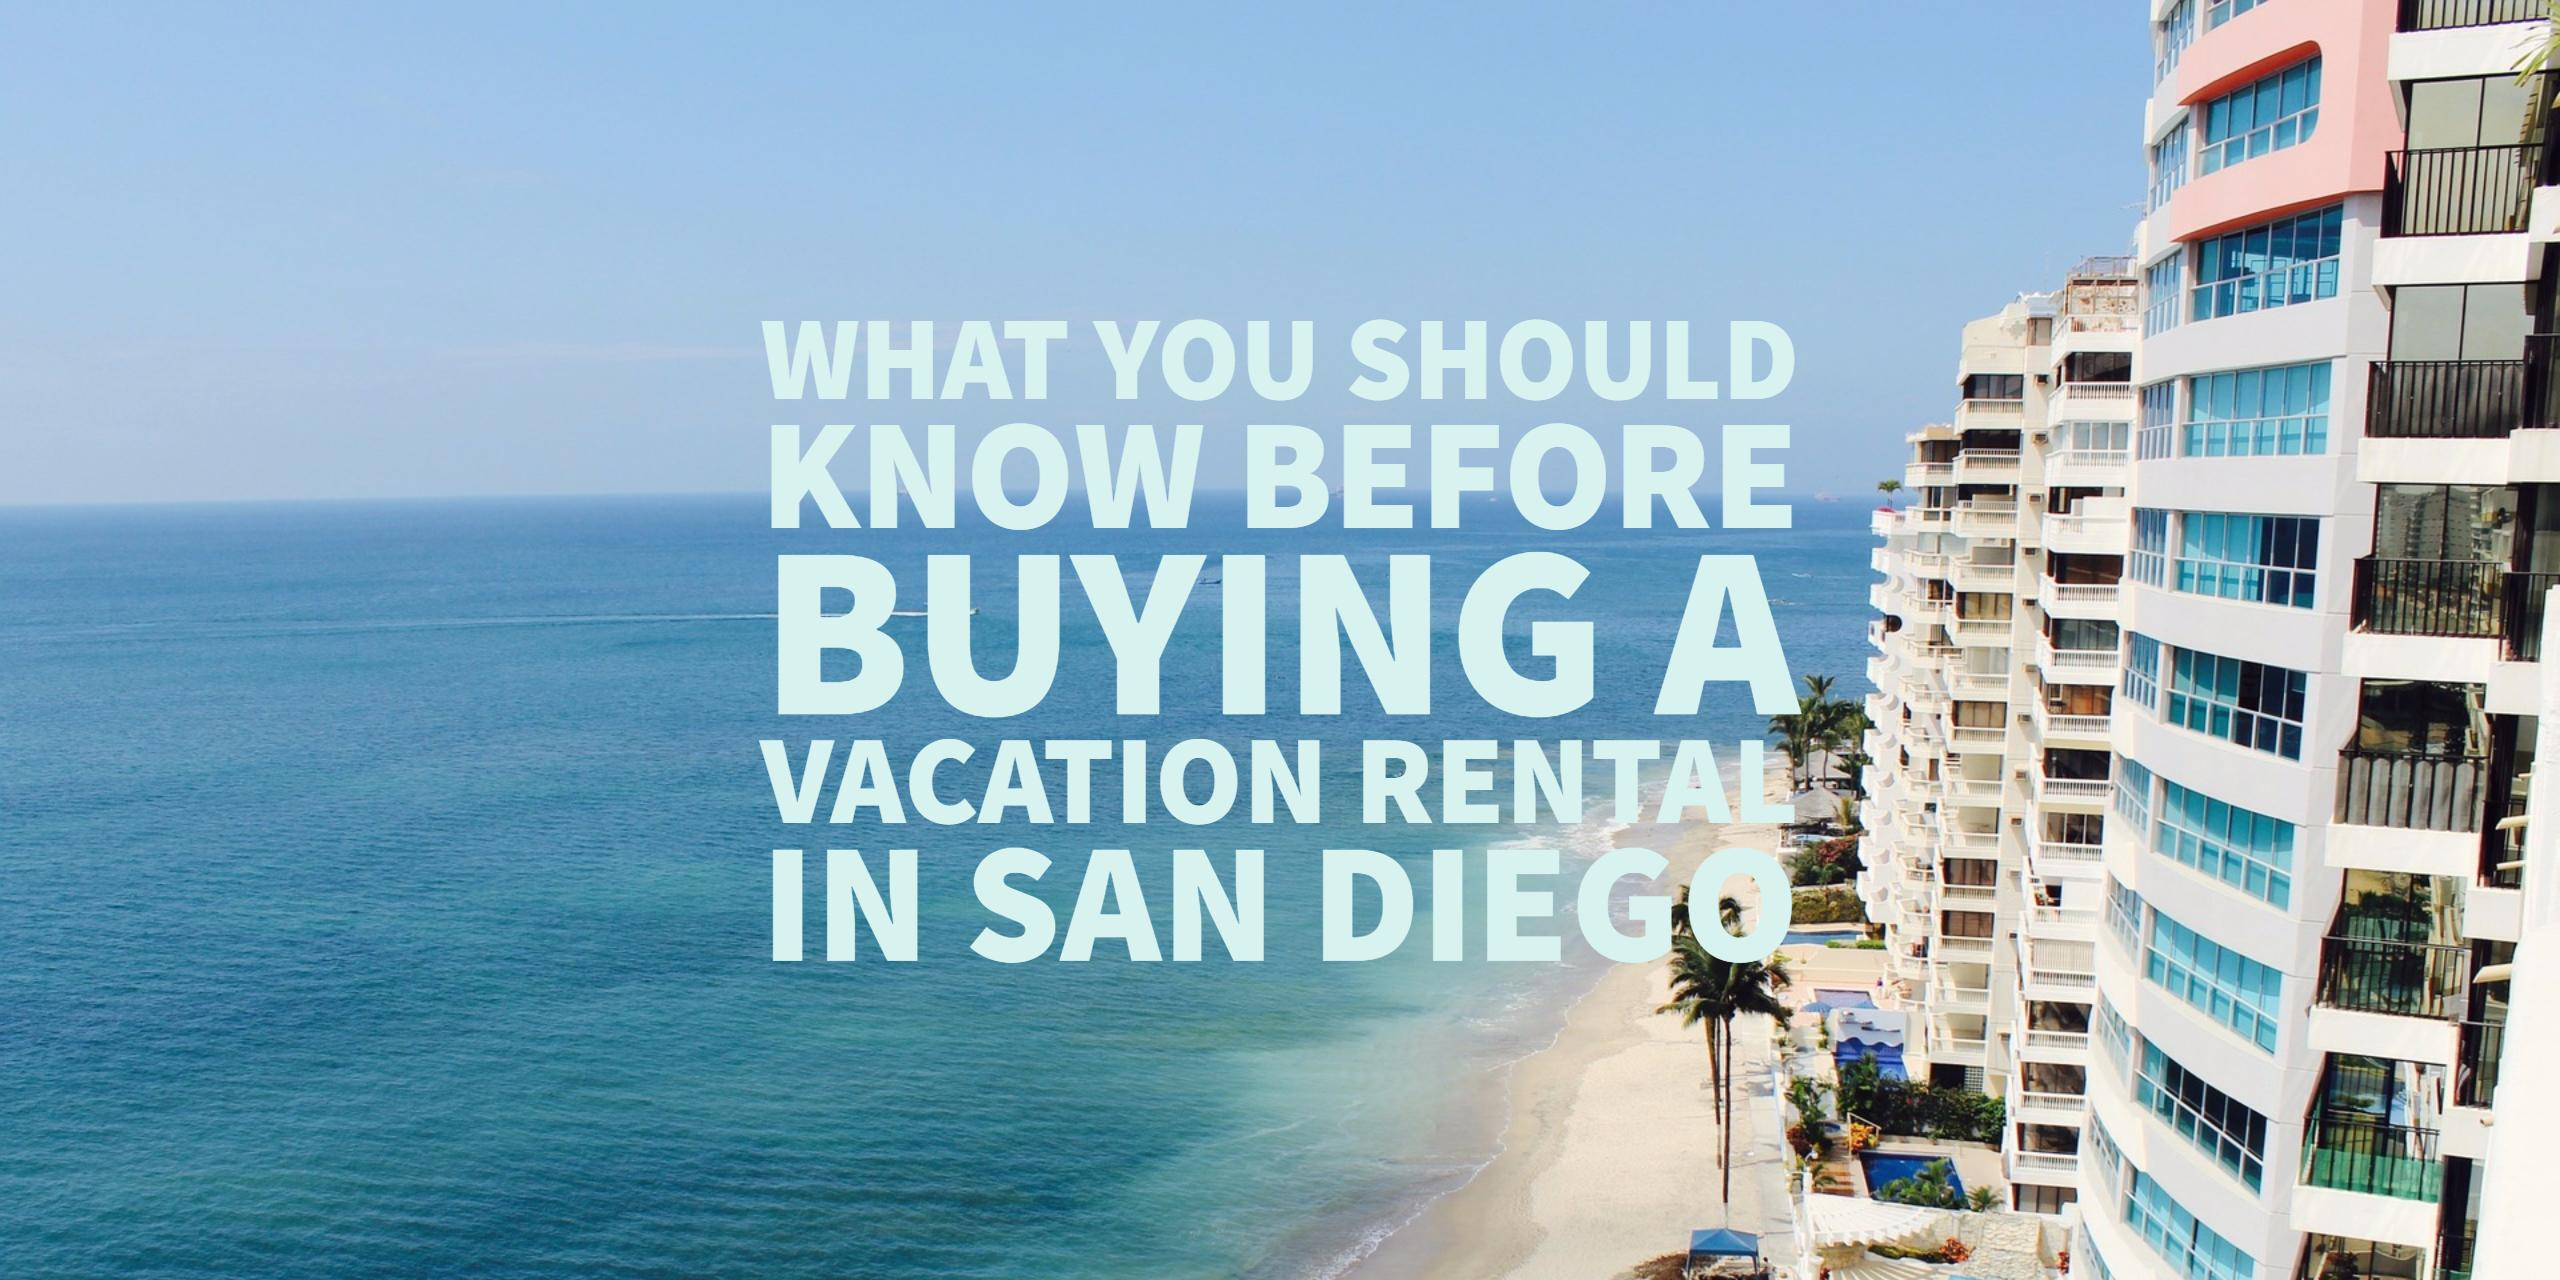 What You Should Know Before Buying a Vacation Rental in San Diego